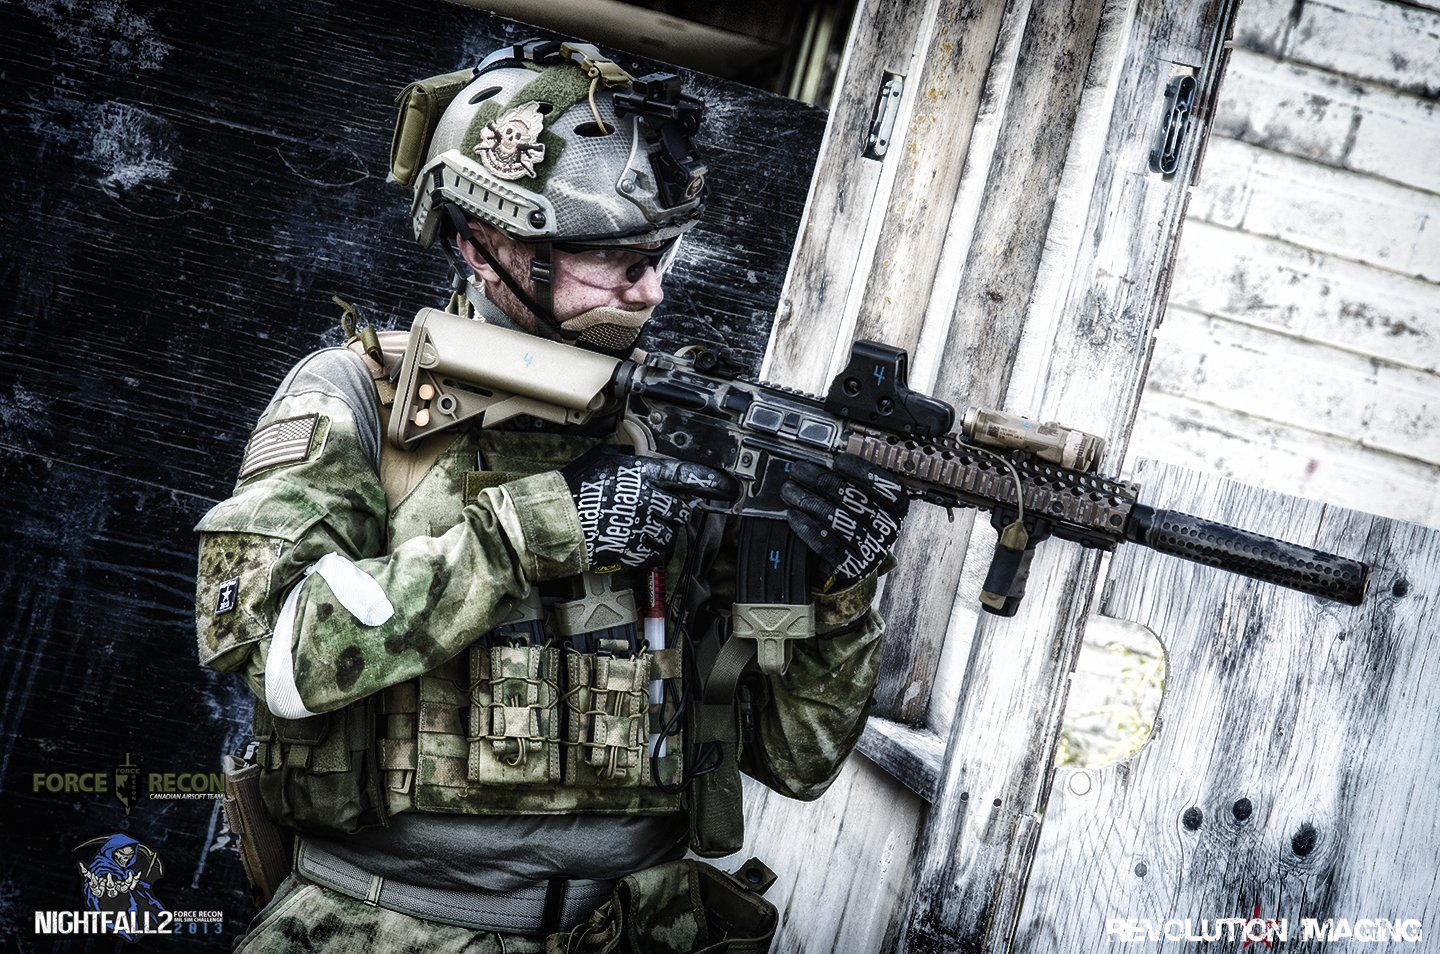 Sniper Rifle Wallpaper Hd Assault Guns Military Rifle Weapons Airsoft Game Toys